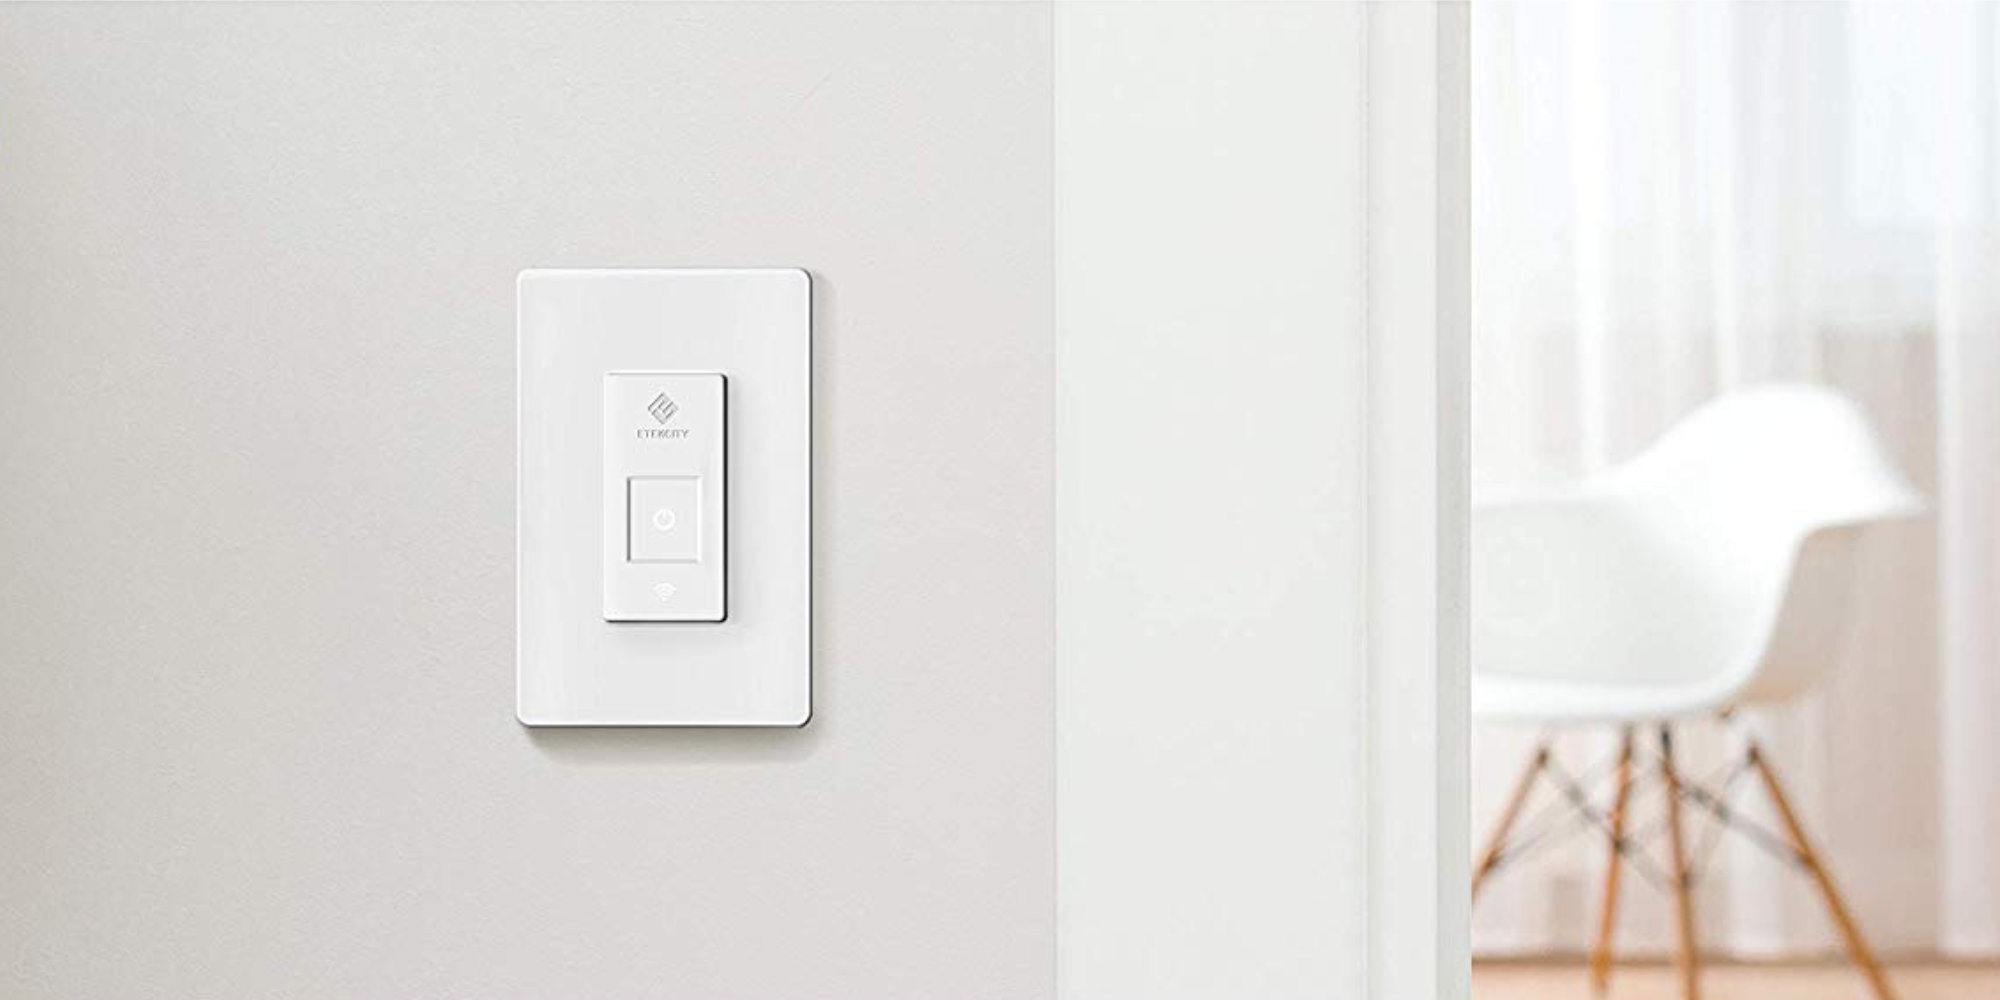 Ditch smart bulbs w/ a 2-pack of Alexa-compatible Light Switches for $26 shipped (Reg. $40)